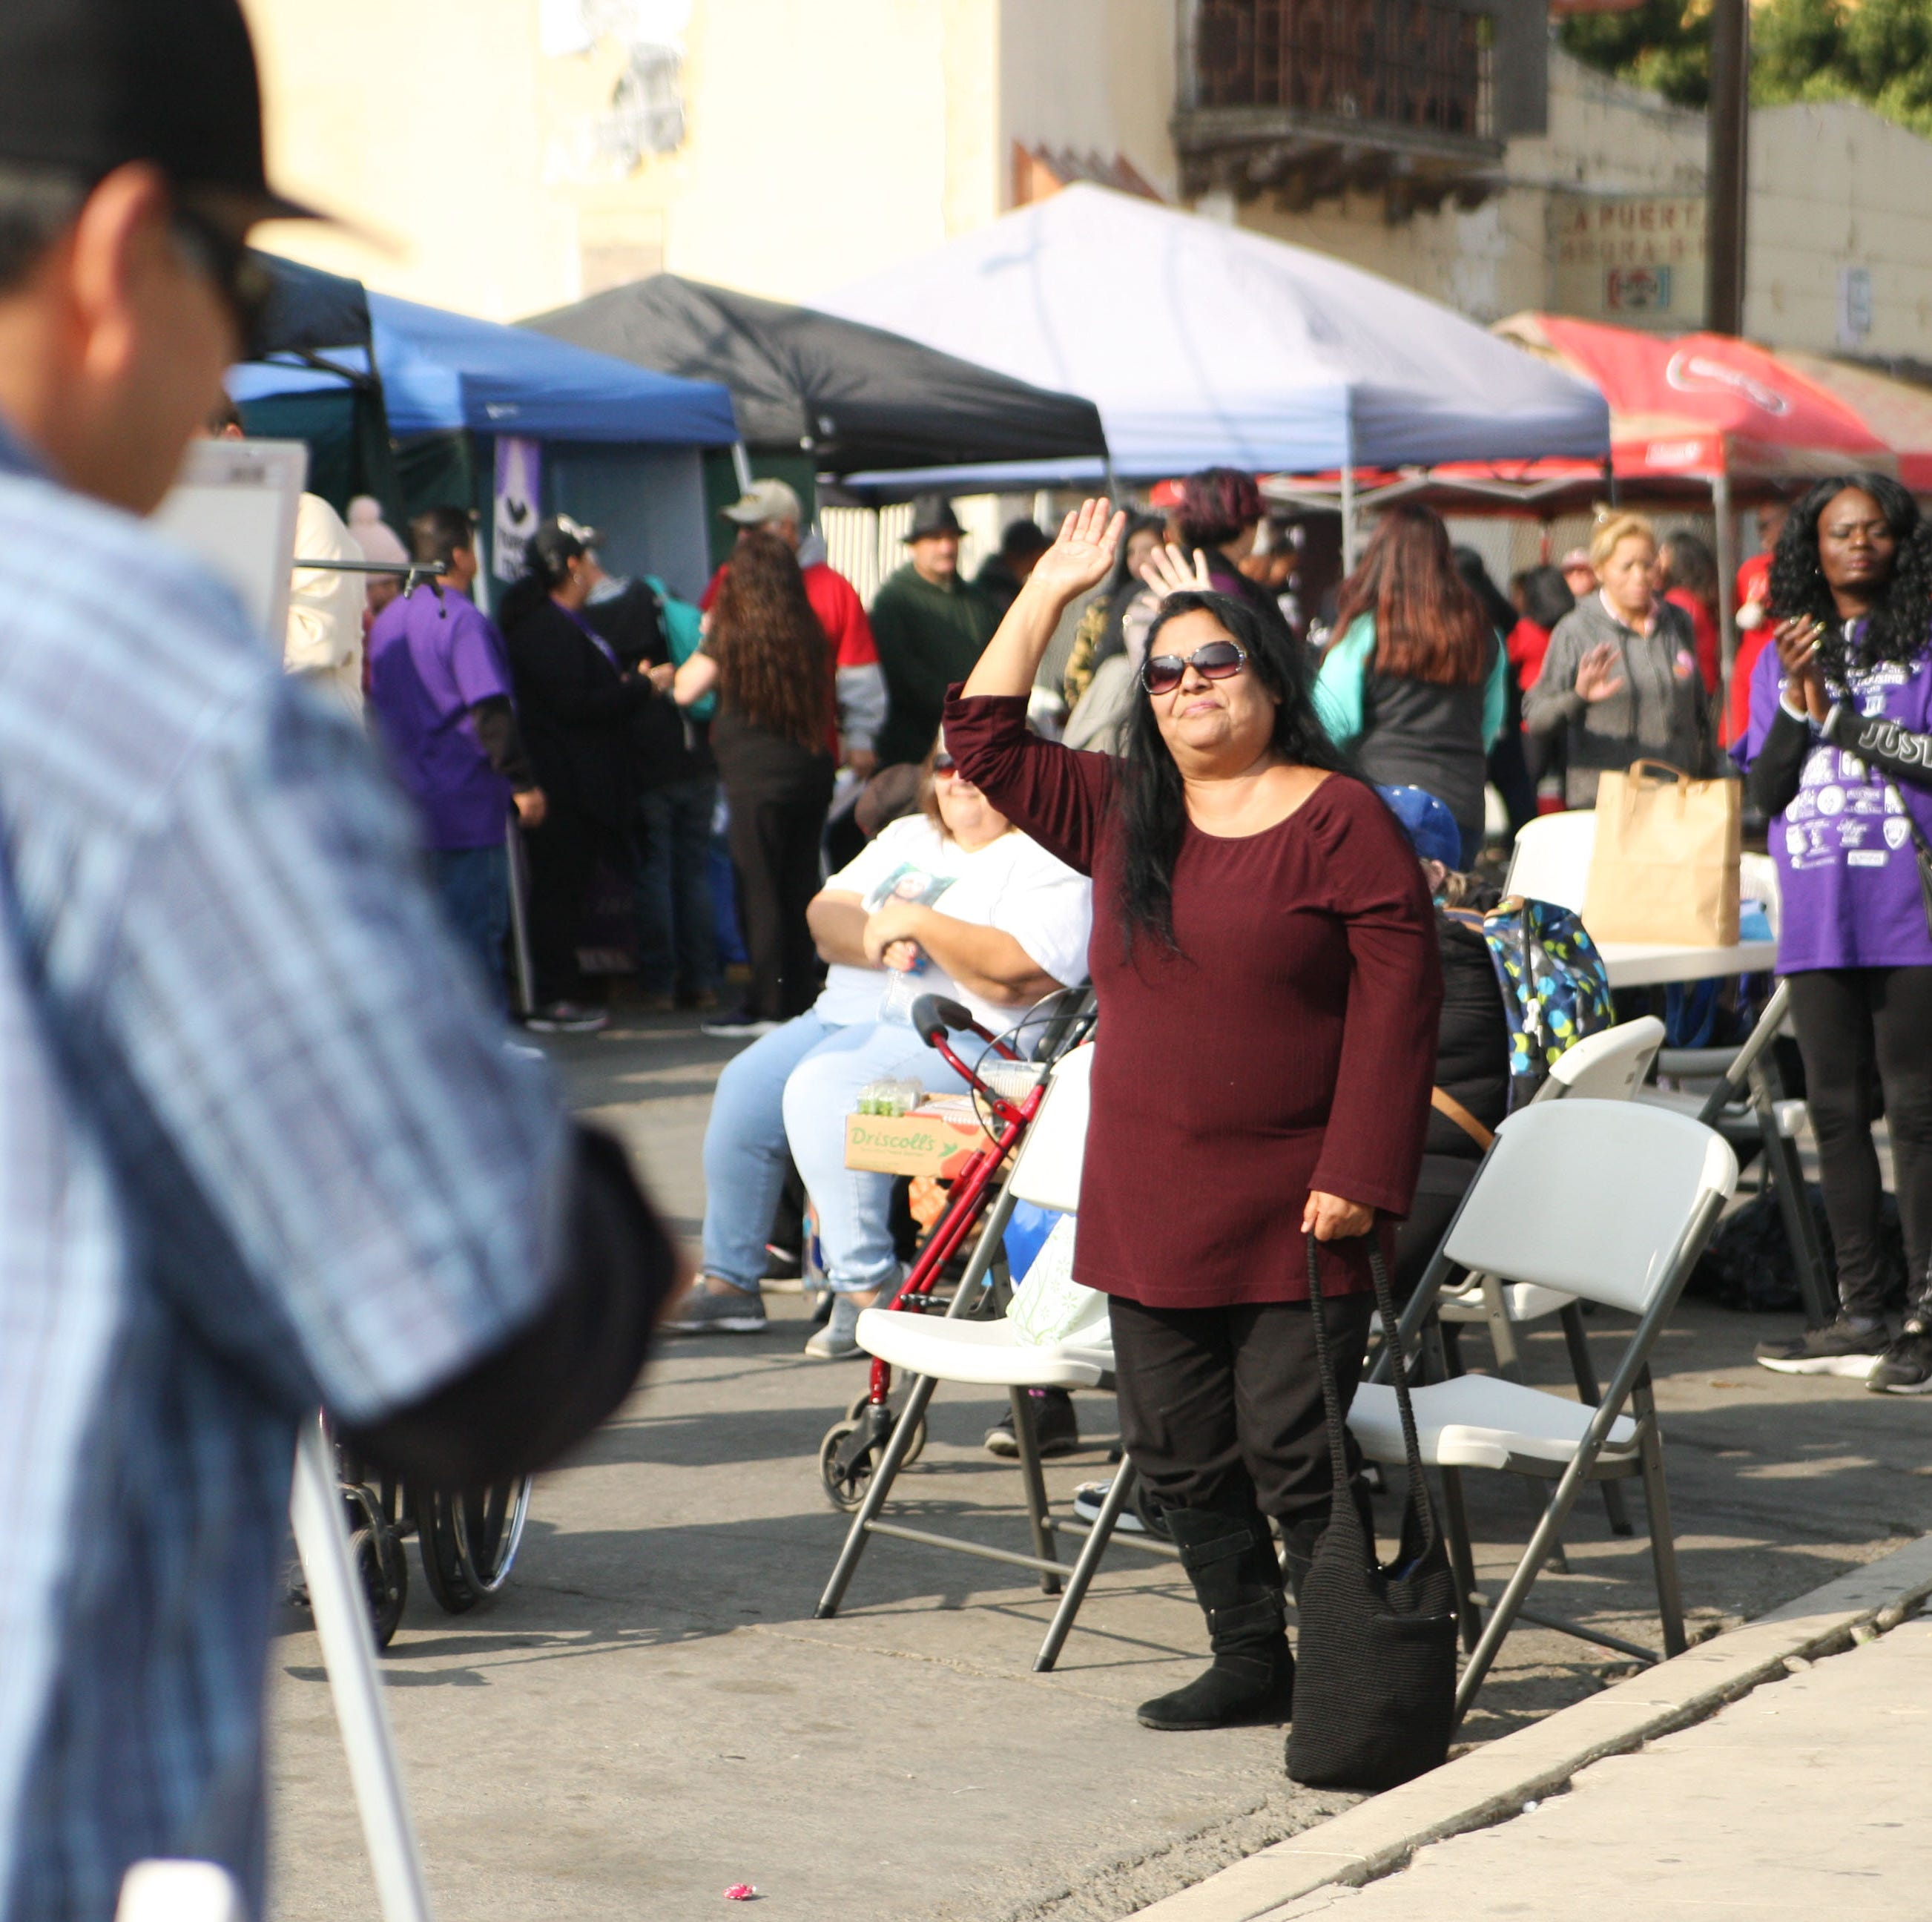 Chinatown block party homeless outreach integral to revitalization, community members say